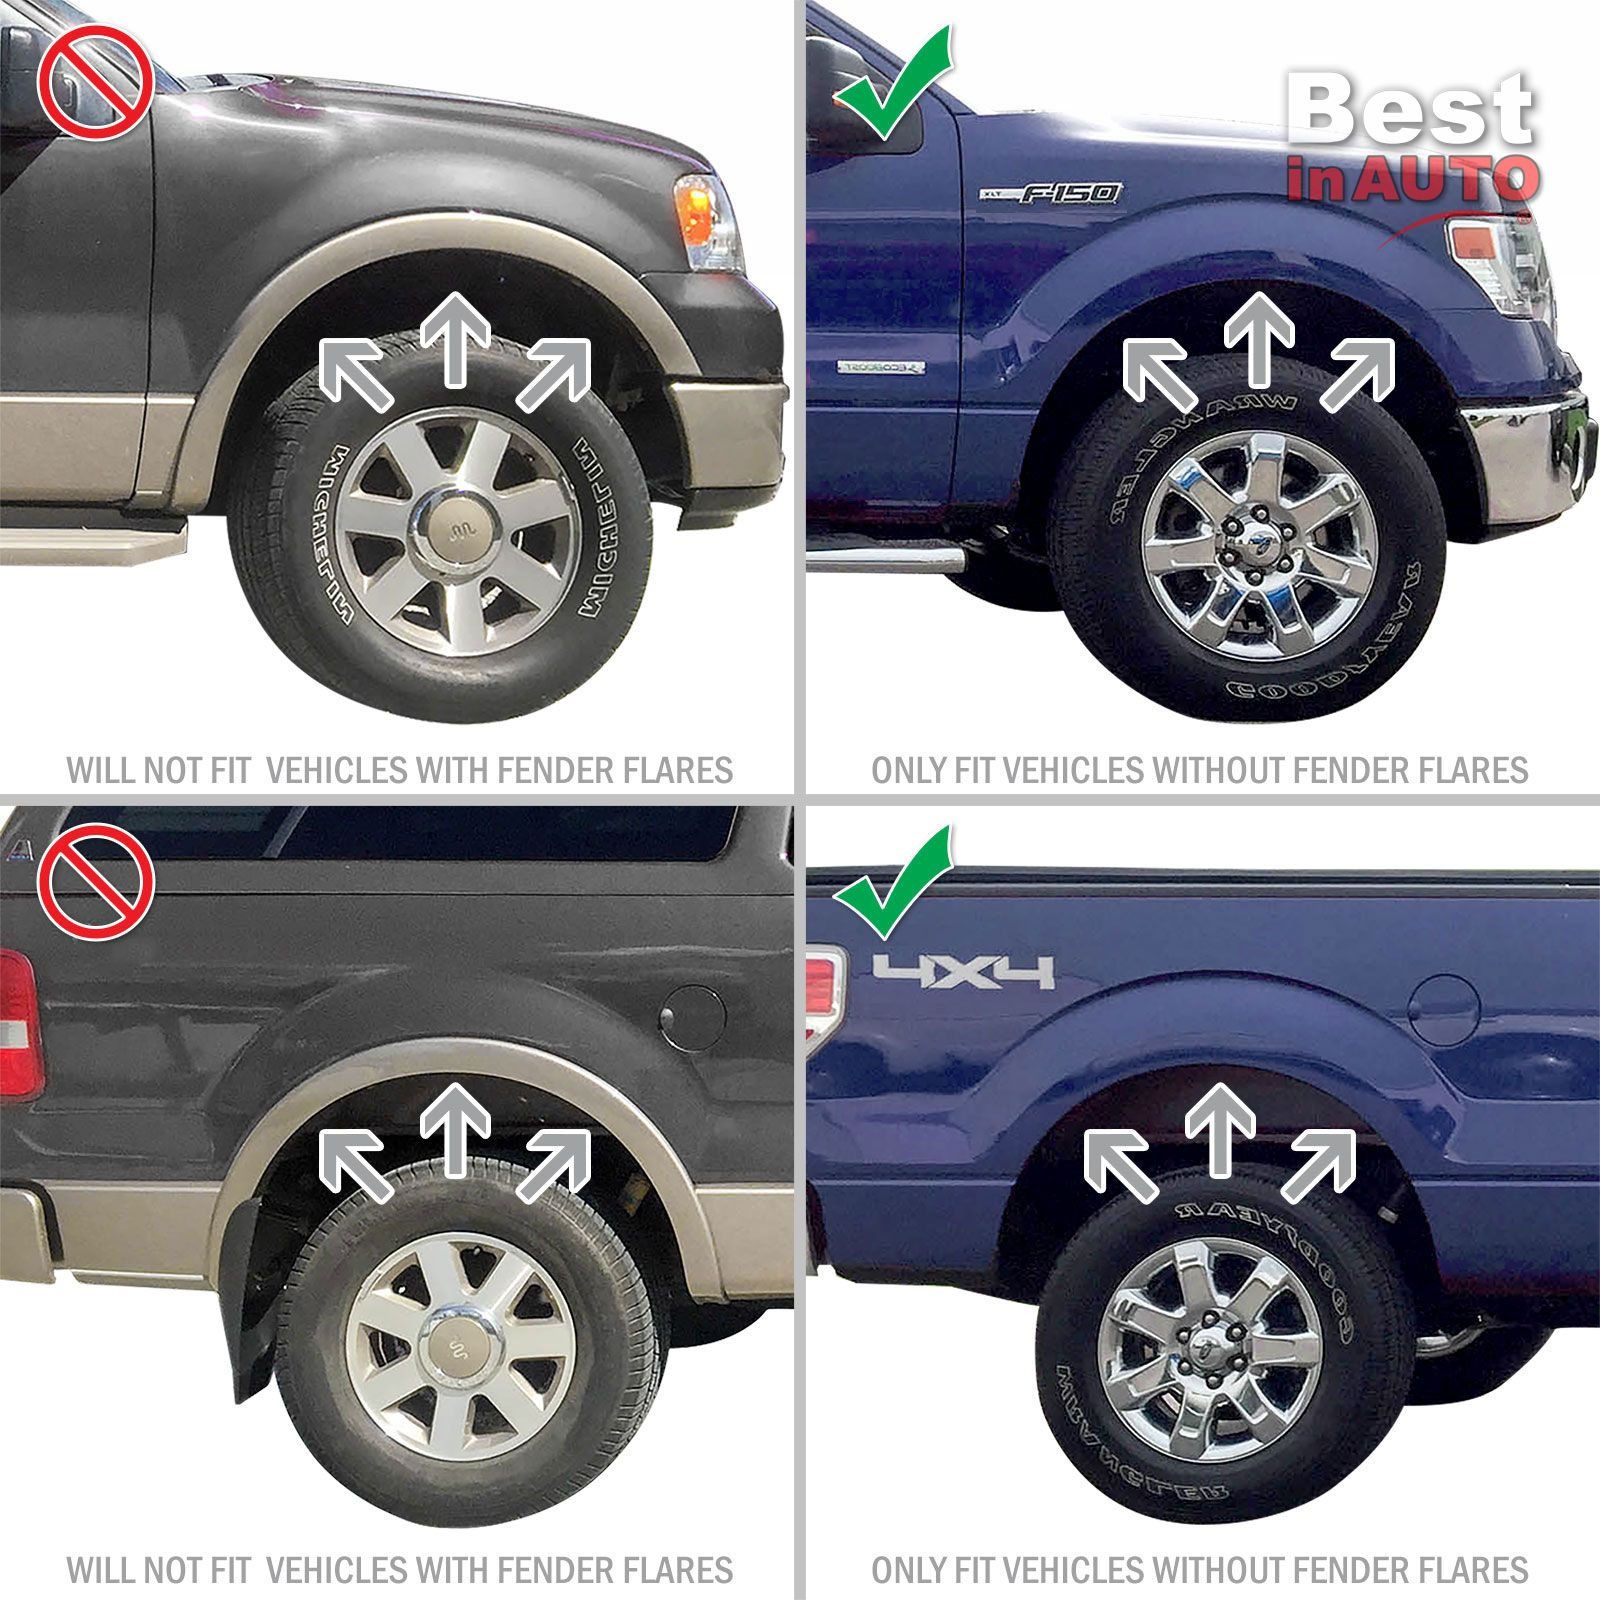 Ford F150 Mud Flaps 2004-2014 Mud Guards Splash Molded 4 Piece Front ...